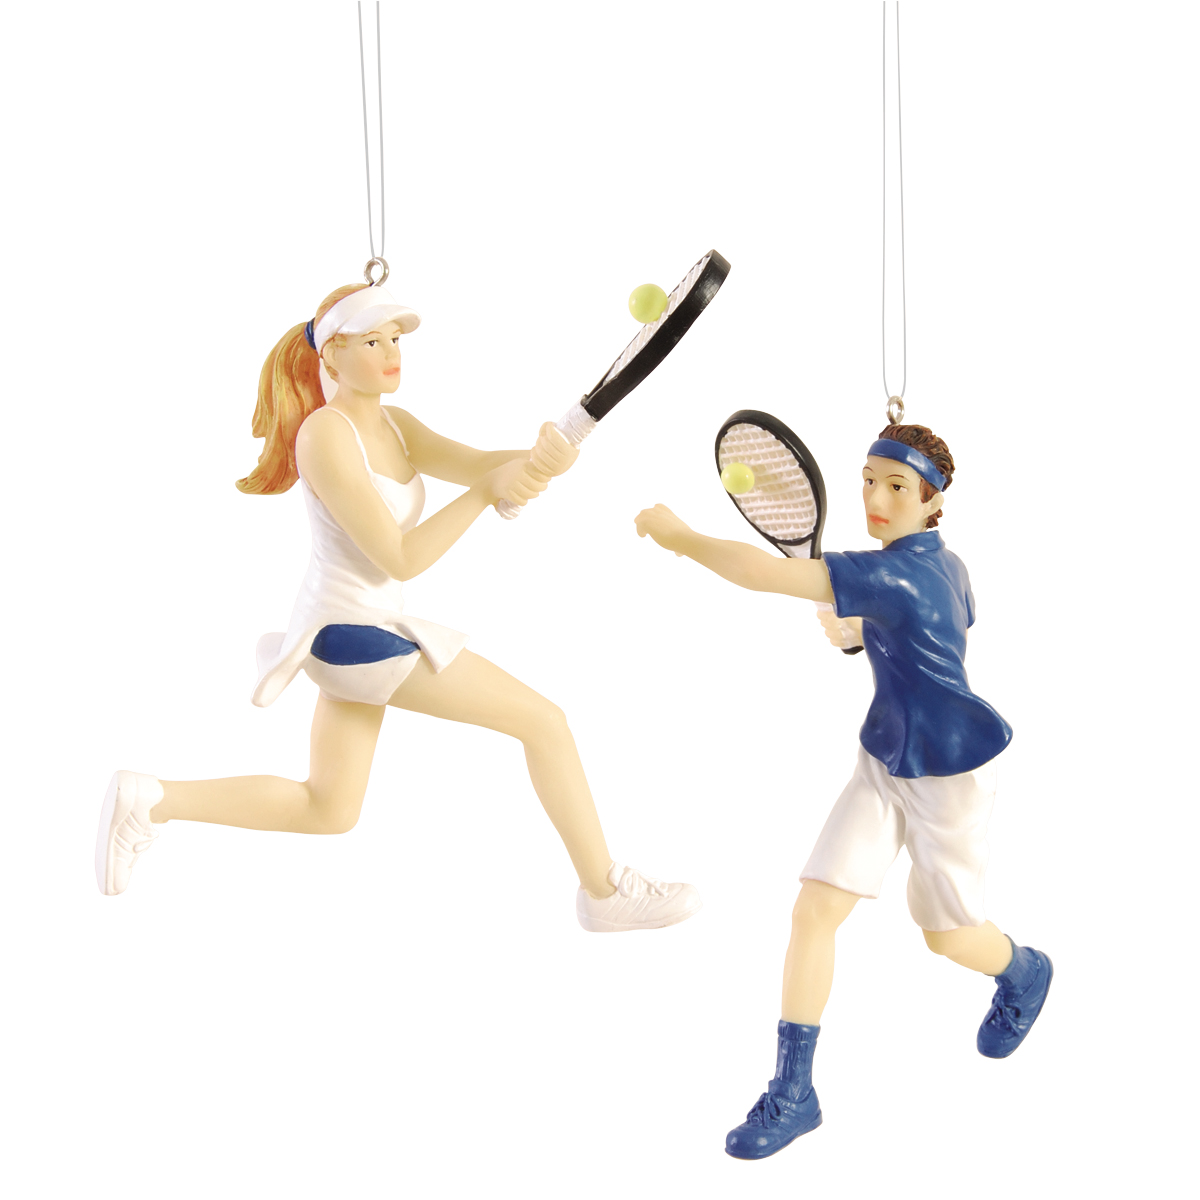 Tennis christmas ornaments - By Gii Tennis Player Christmas Ornaments